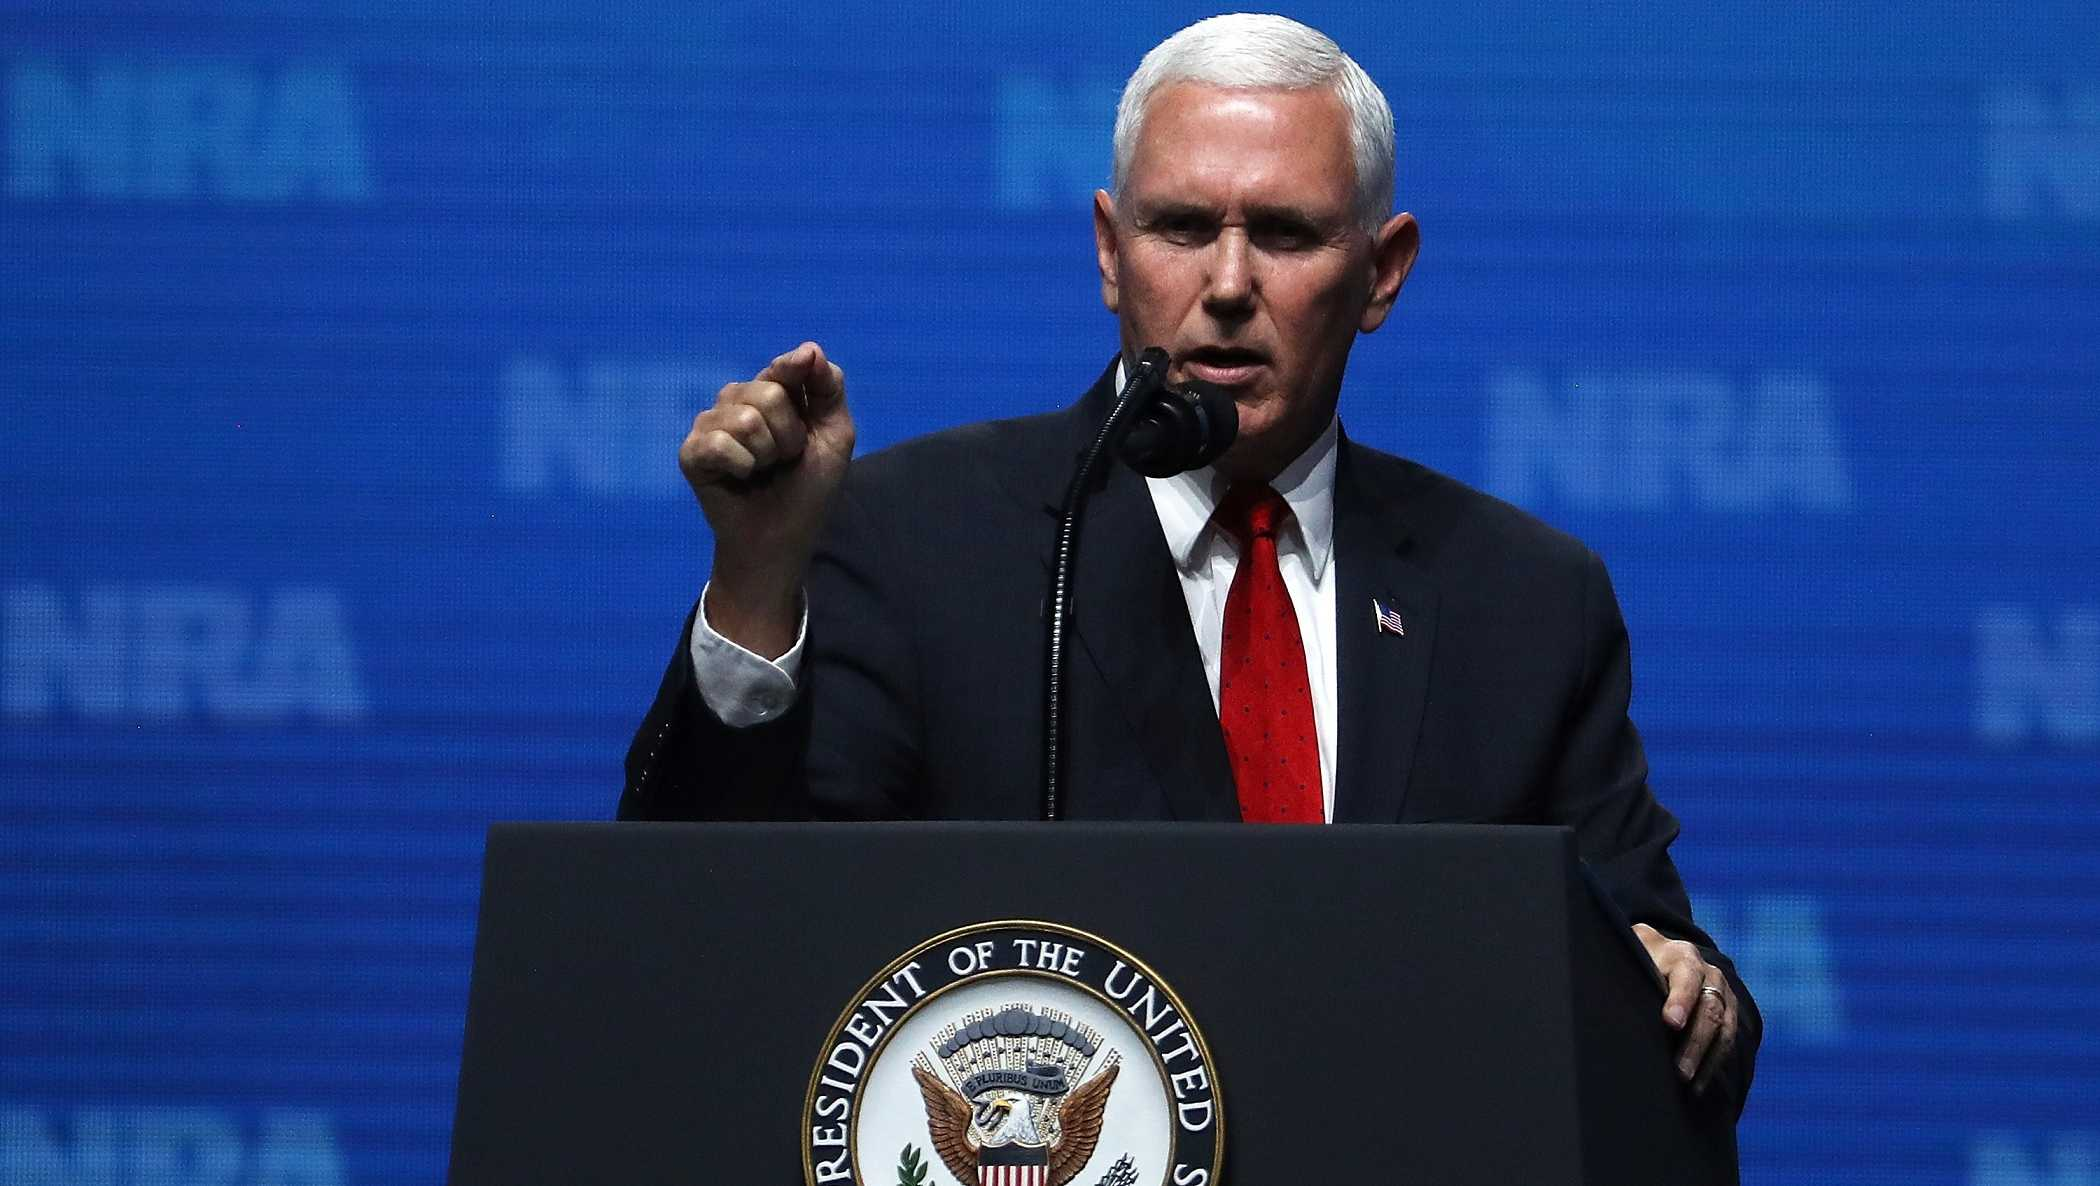 Vice President Mike Pence speaks at the NRA-ILA Leadership Forum on May 4, 2018 in Dallas, Texas.